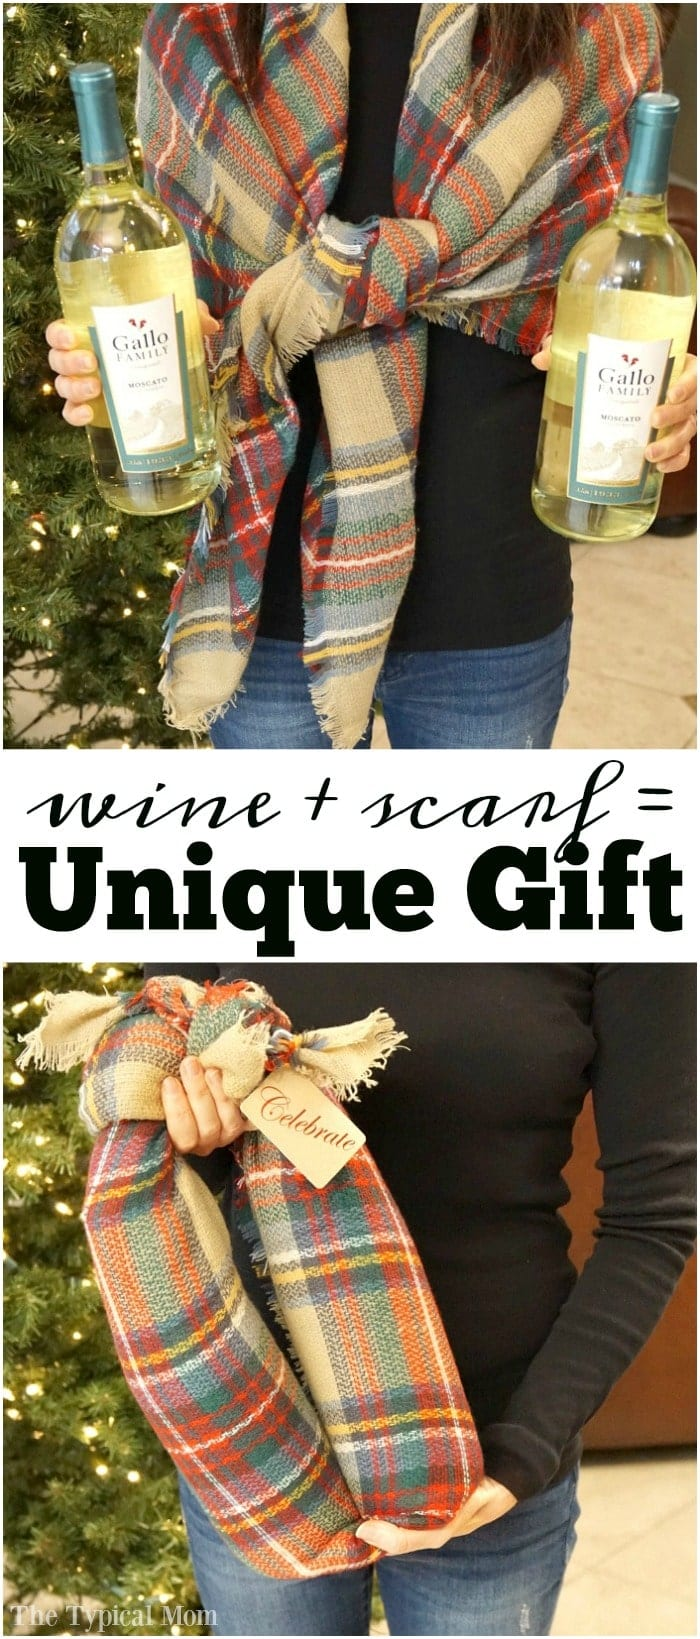 How to gift wine bottles in a scarf, I use this all the time!! Step by step of how to wrap wine bottles in a scarf to create a unique gift.